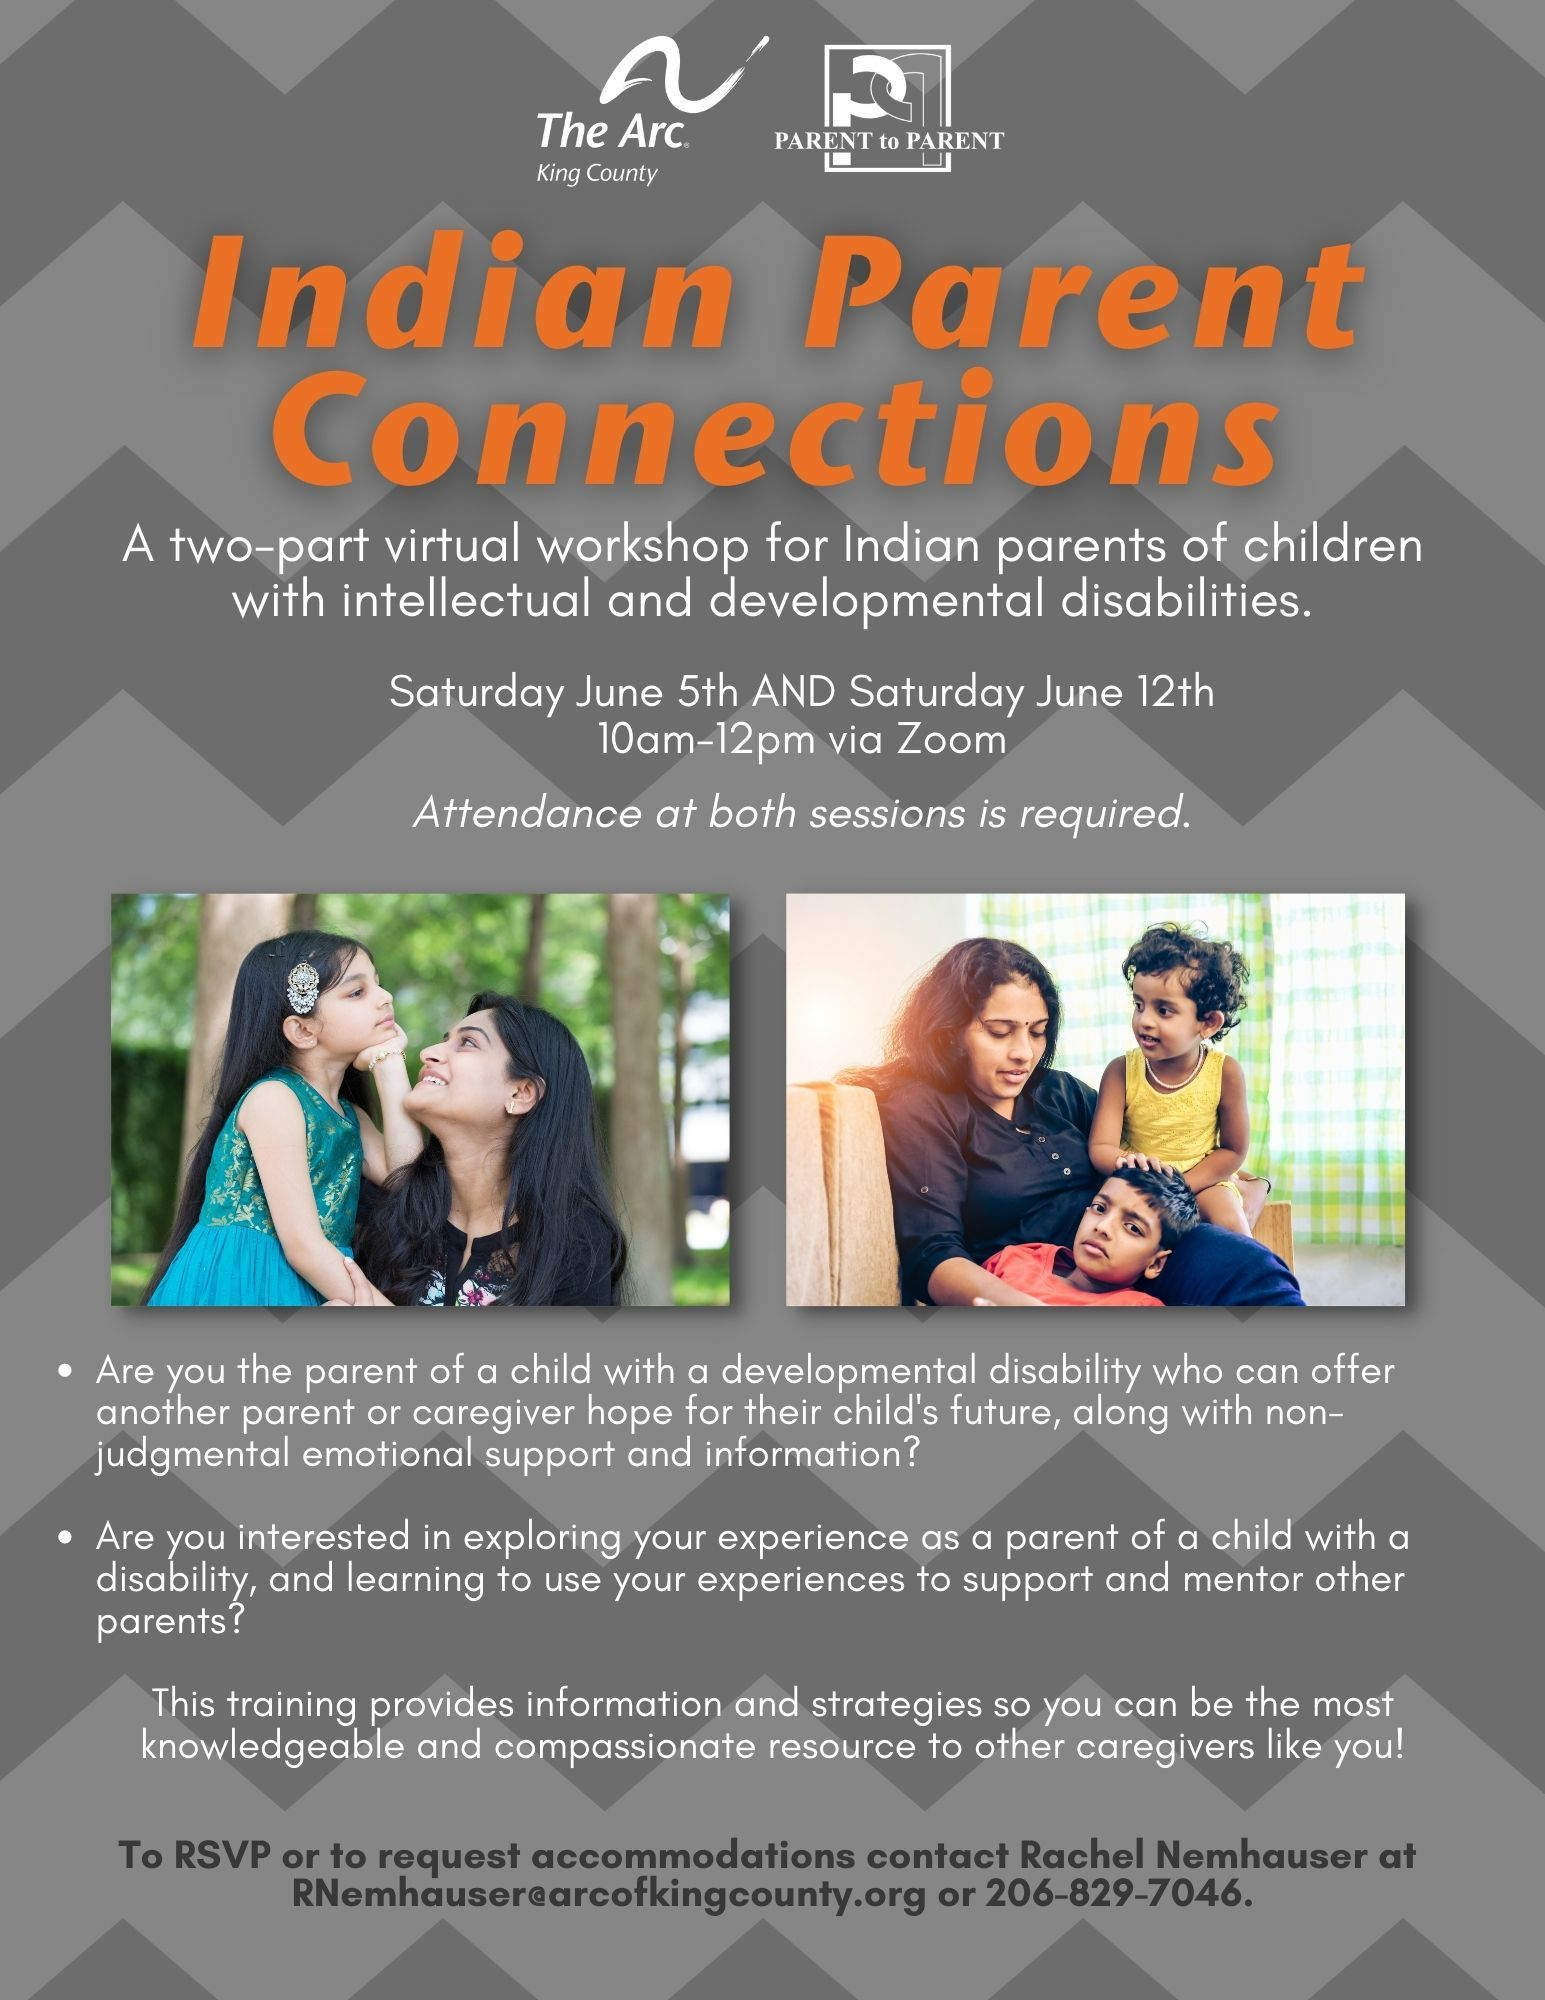 Indian Parent and Caregiver Connections